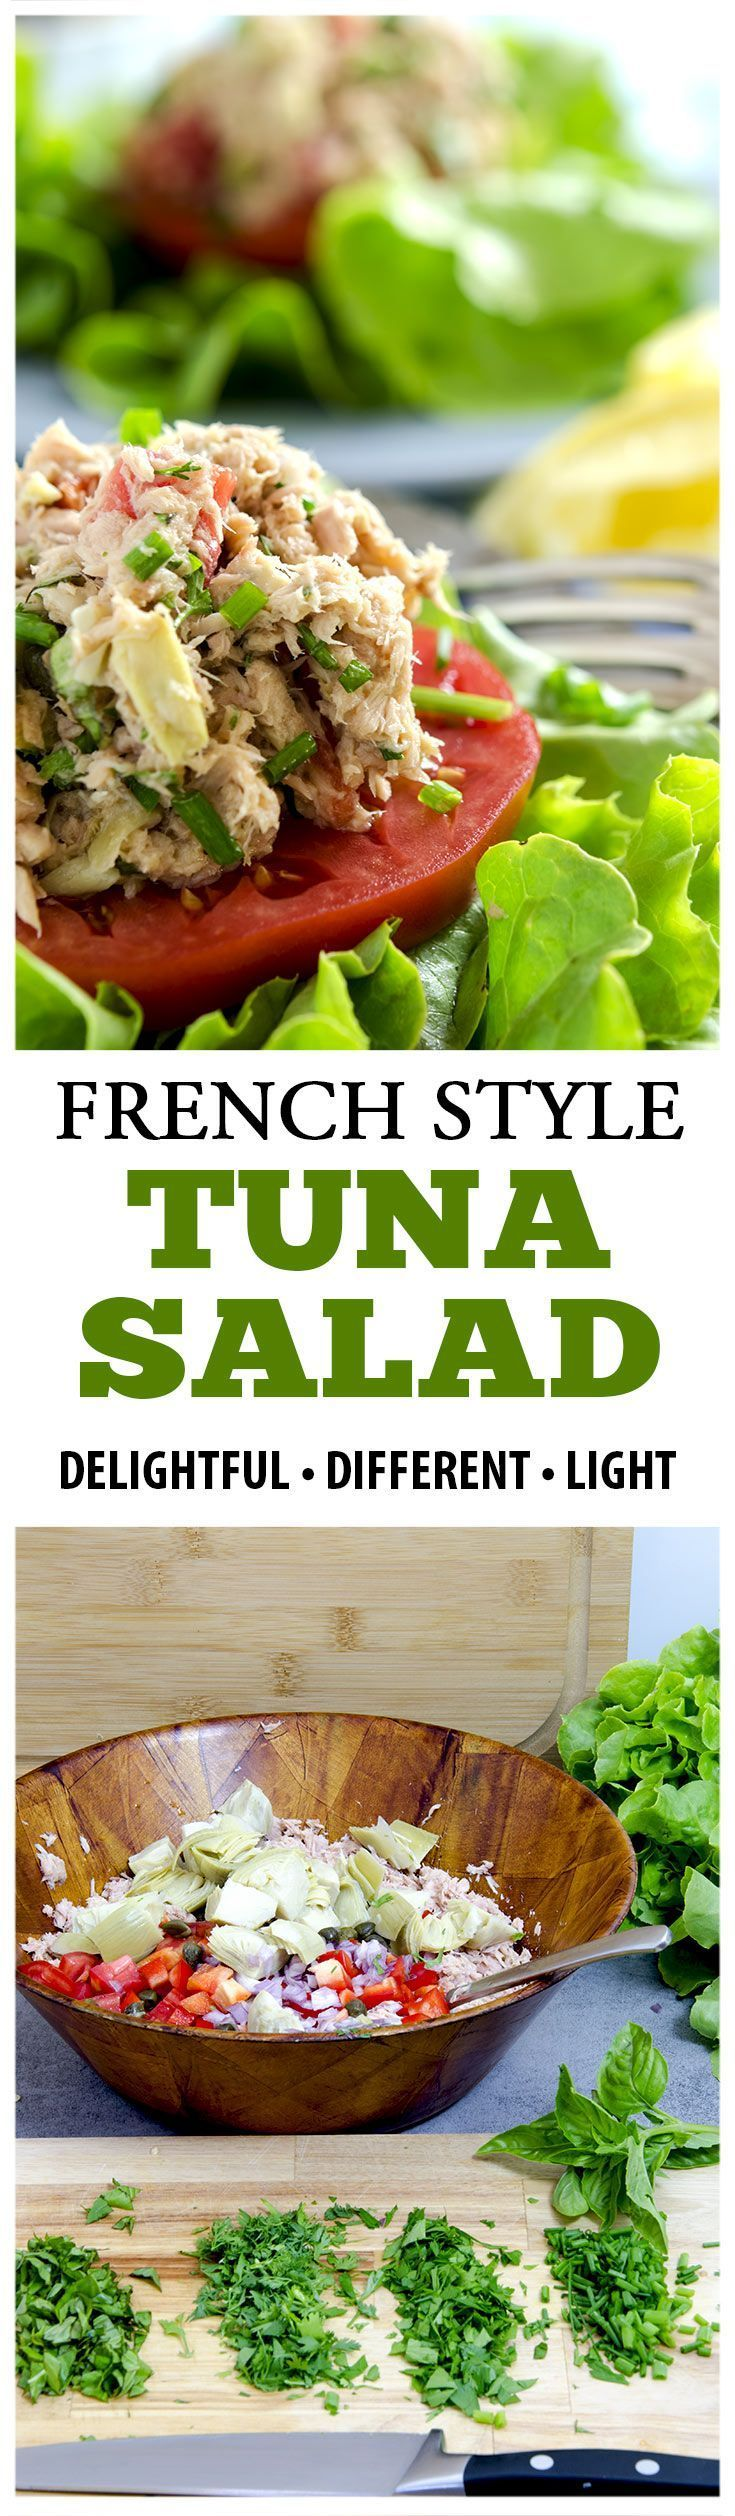 Summer Tuna Salad Recipe Recipe Salad Recipes Tuna Fish Recipes Tuna Salad Recipe